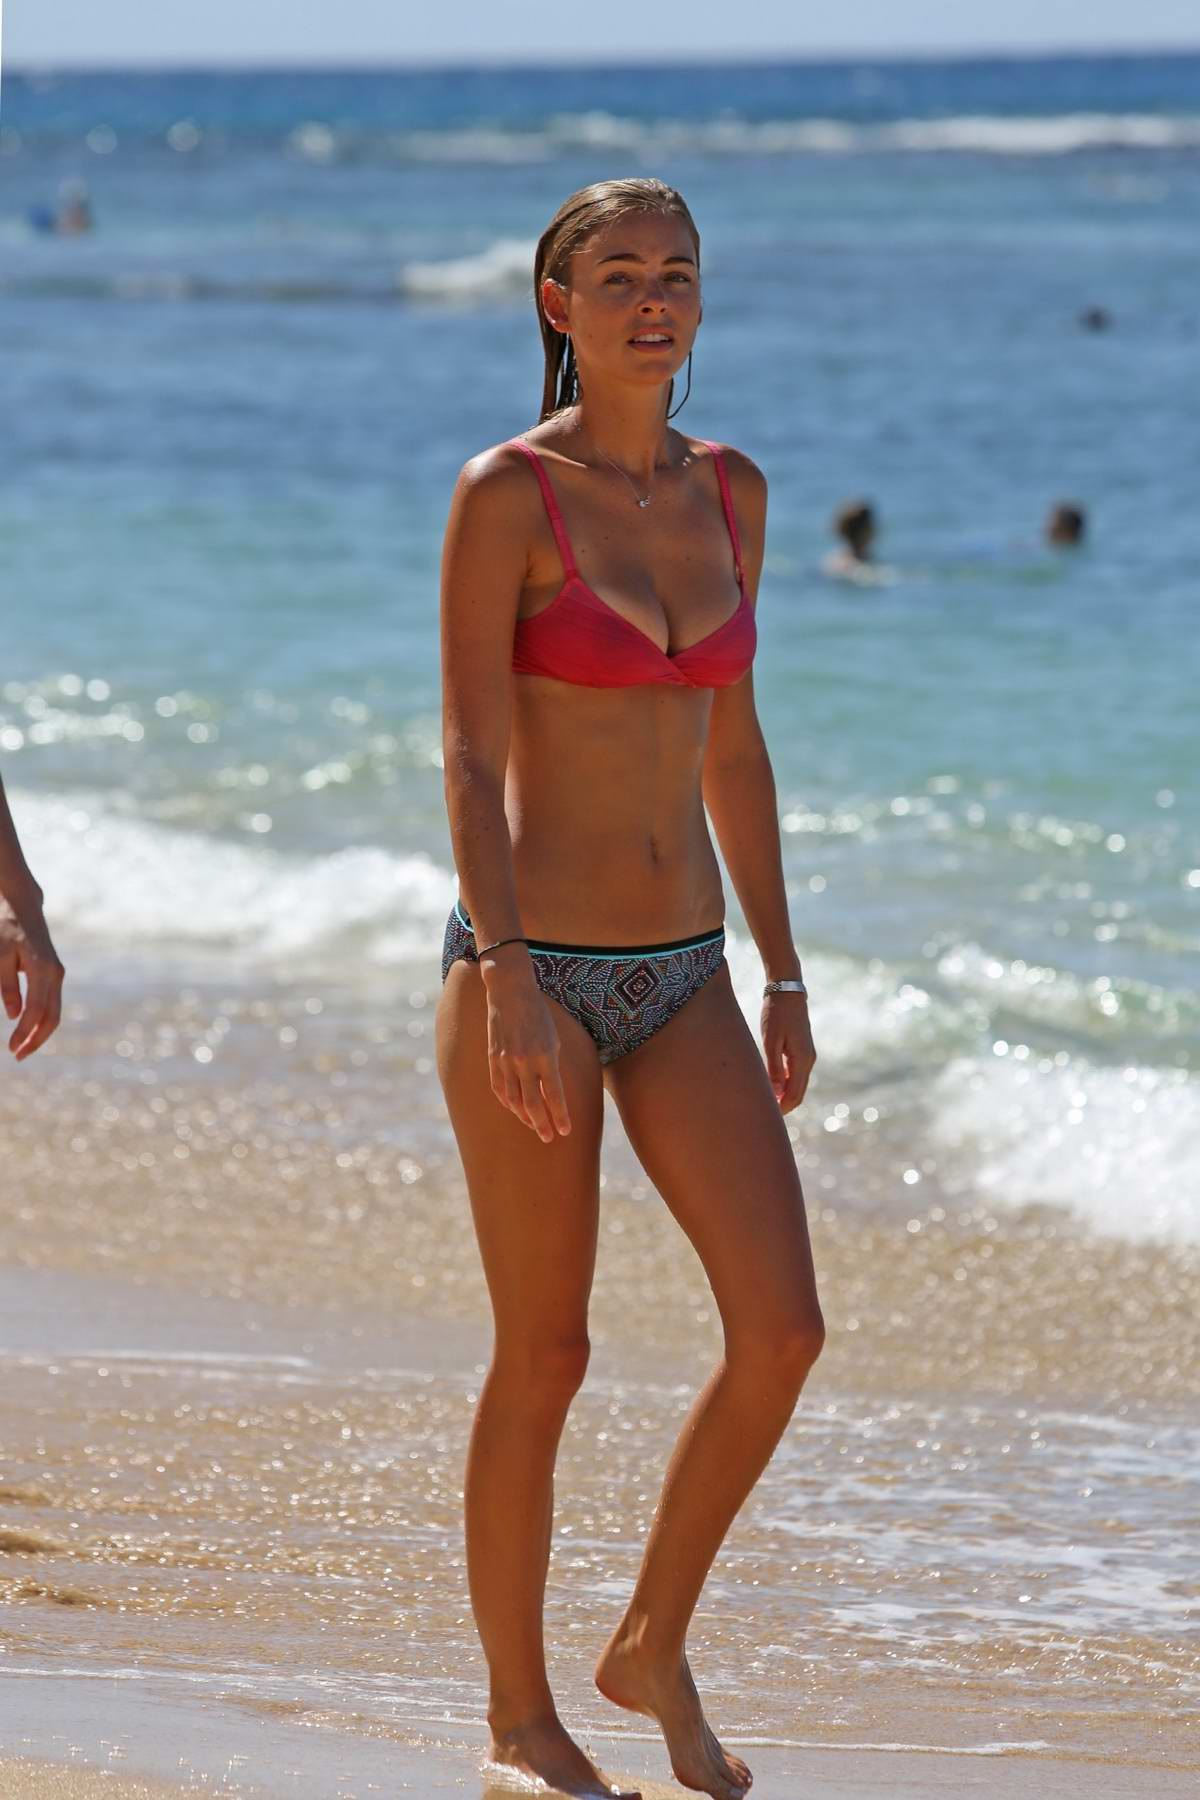 Elizabeth Turner in a bikini enoying the beach in Hawaii